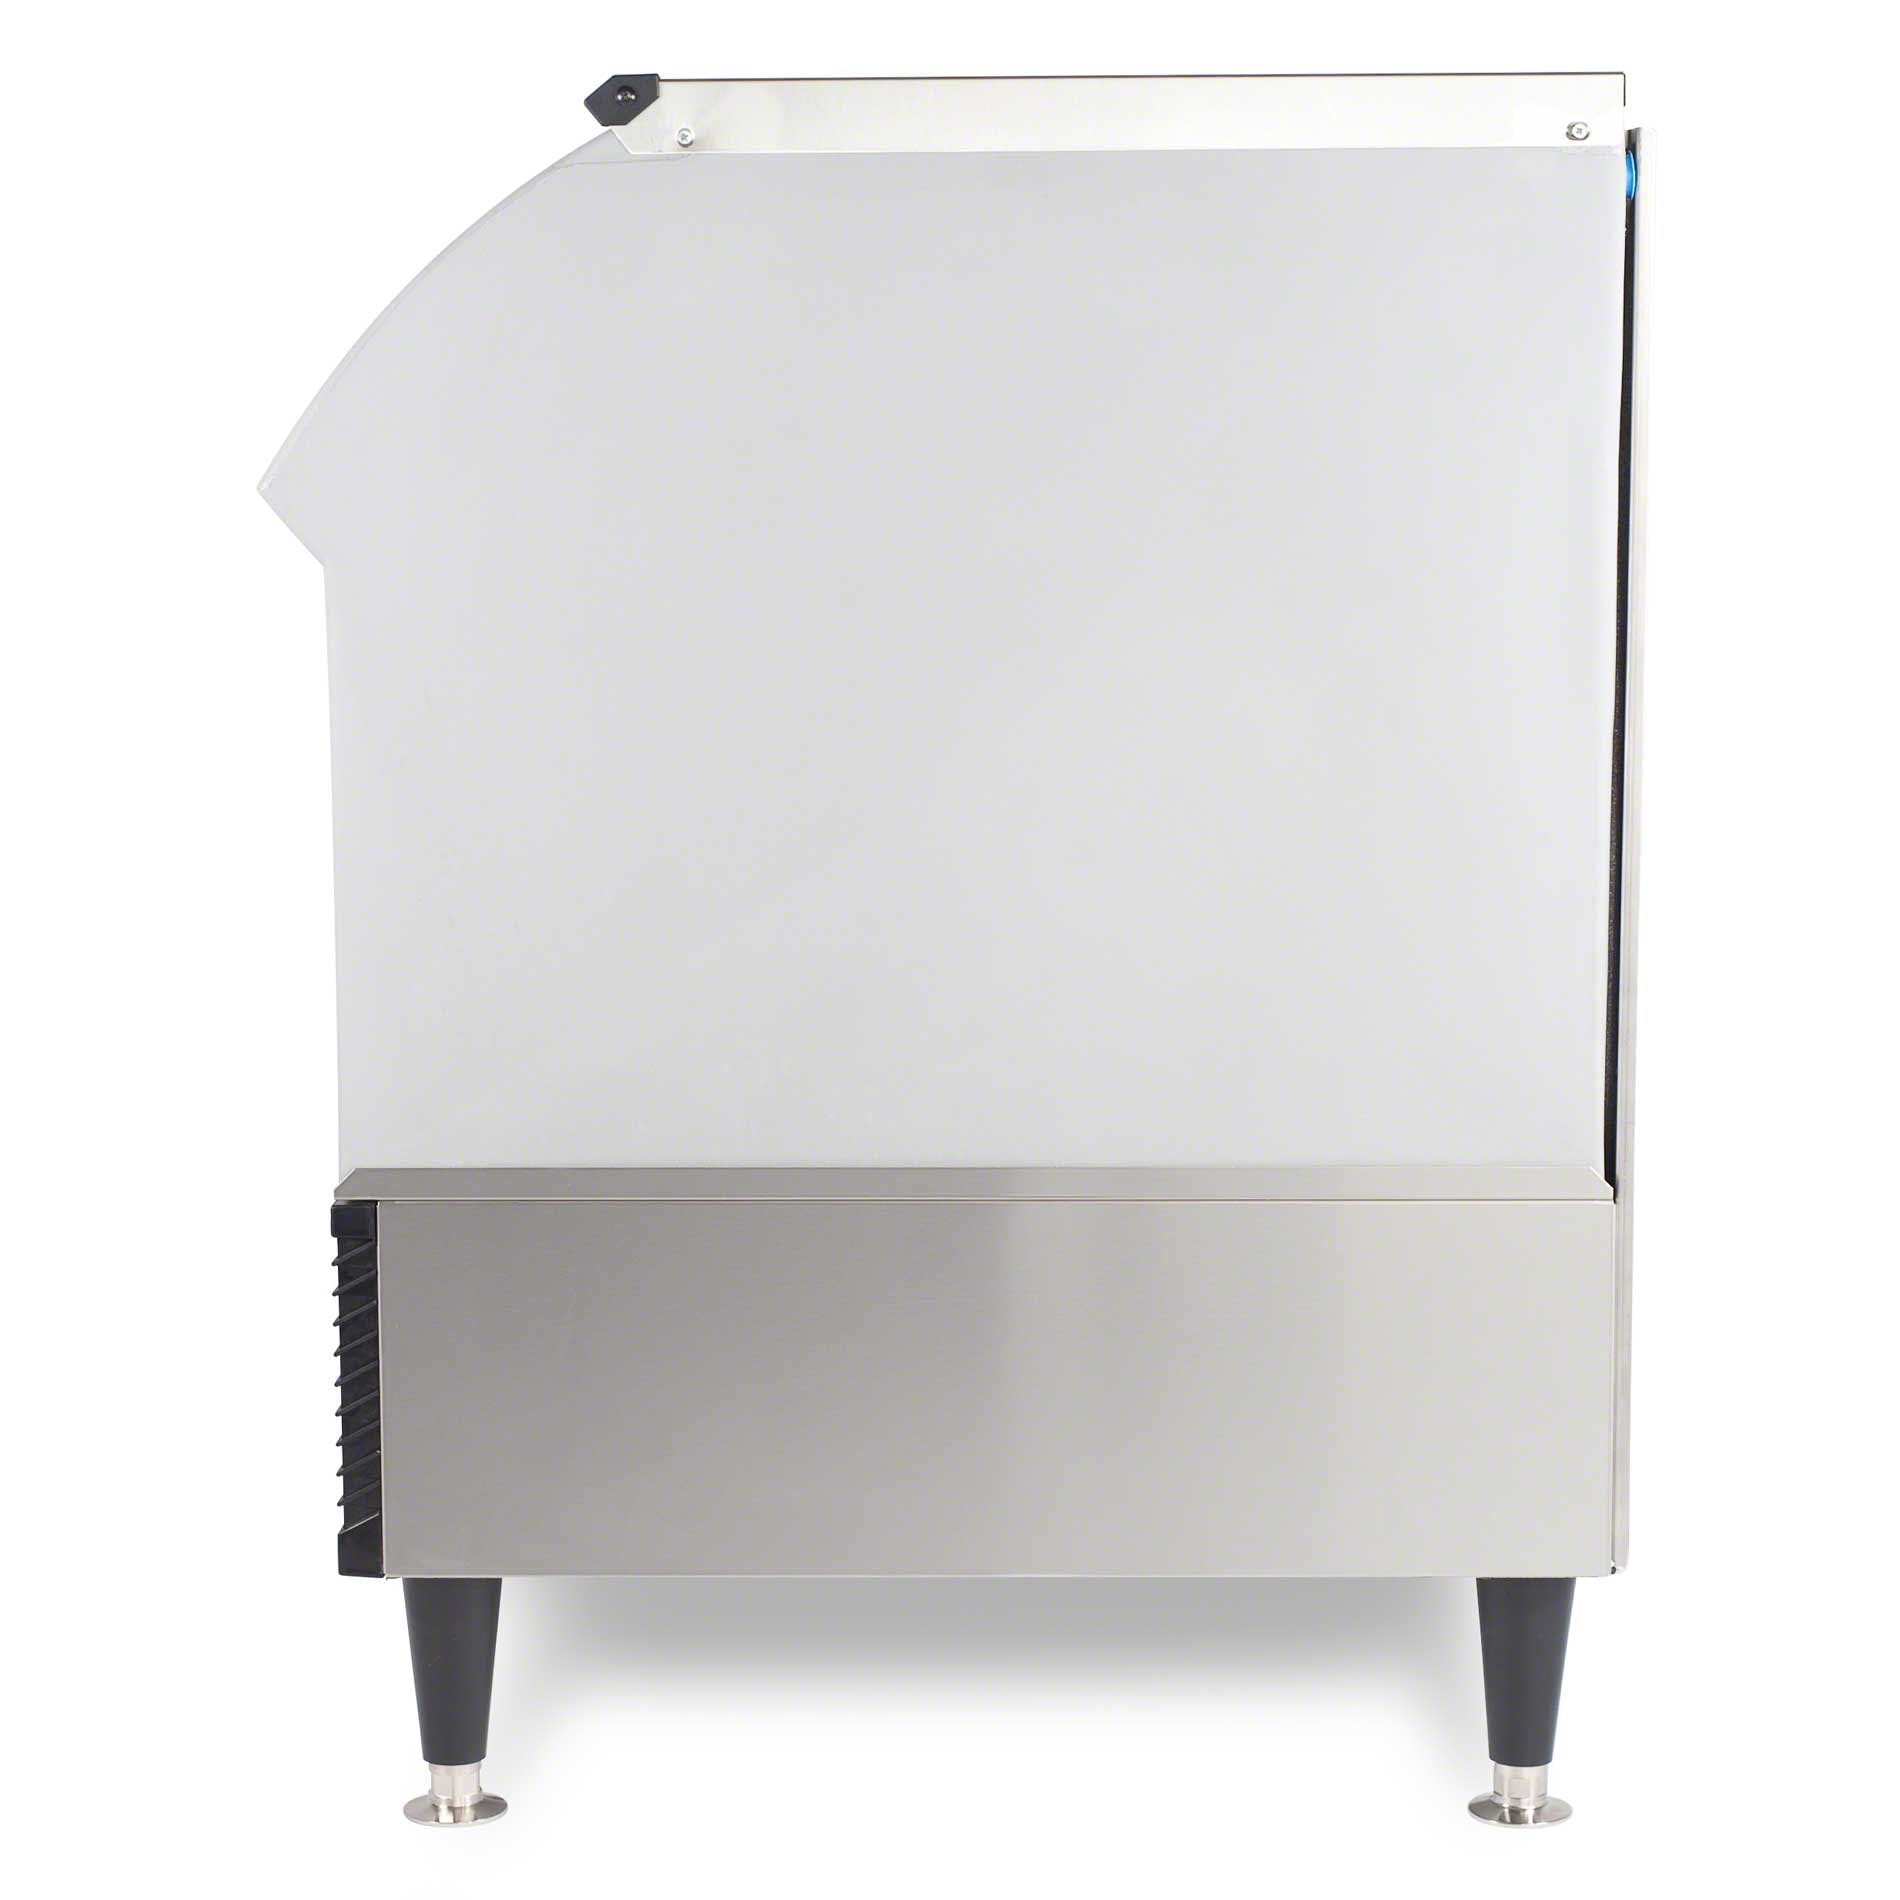 Ice-O-Matic - ICEU226FW 232 lb Self-Contained Full Cube Ice Machine - sold by Food Service Warehouse